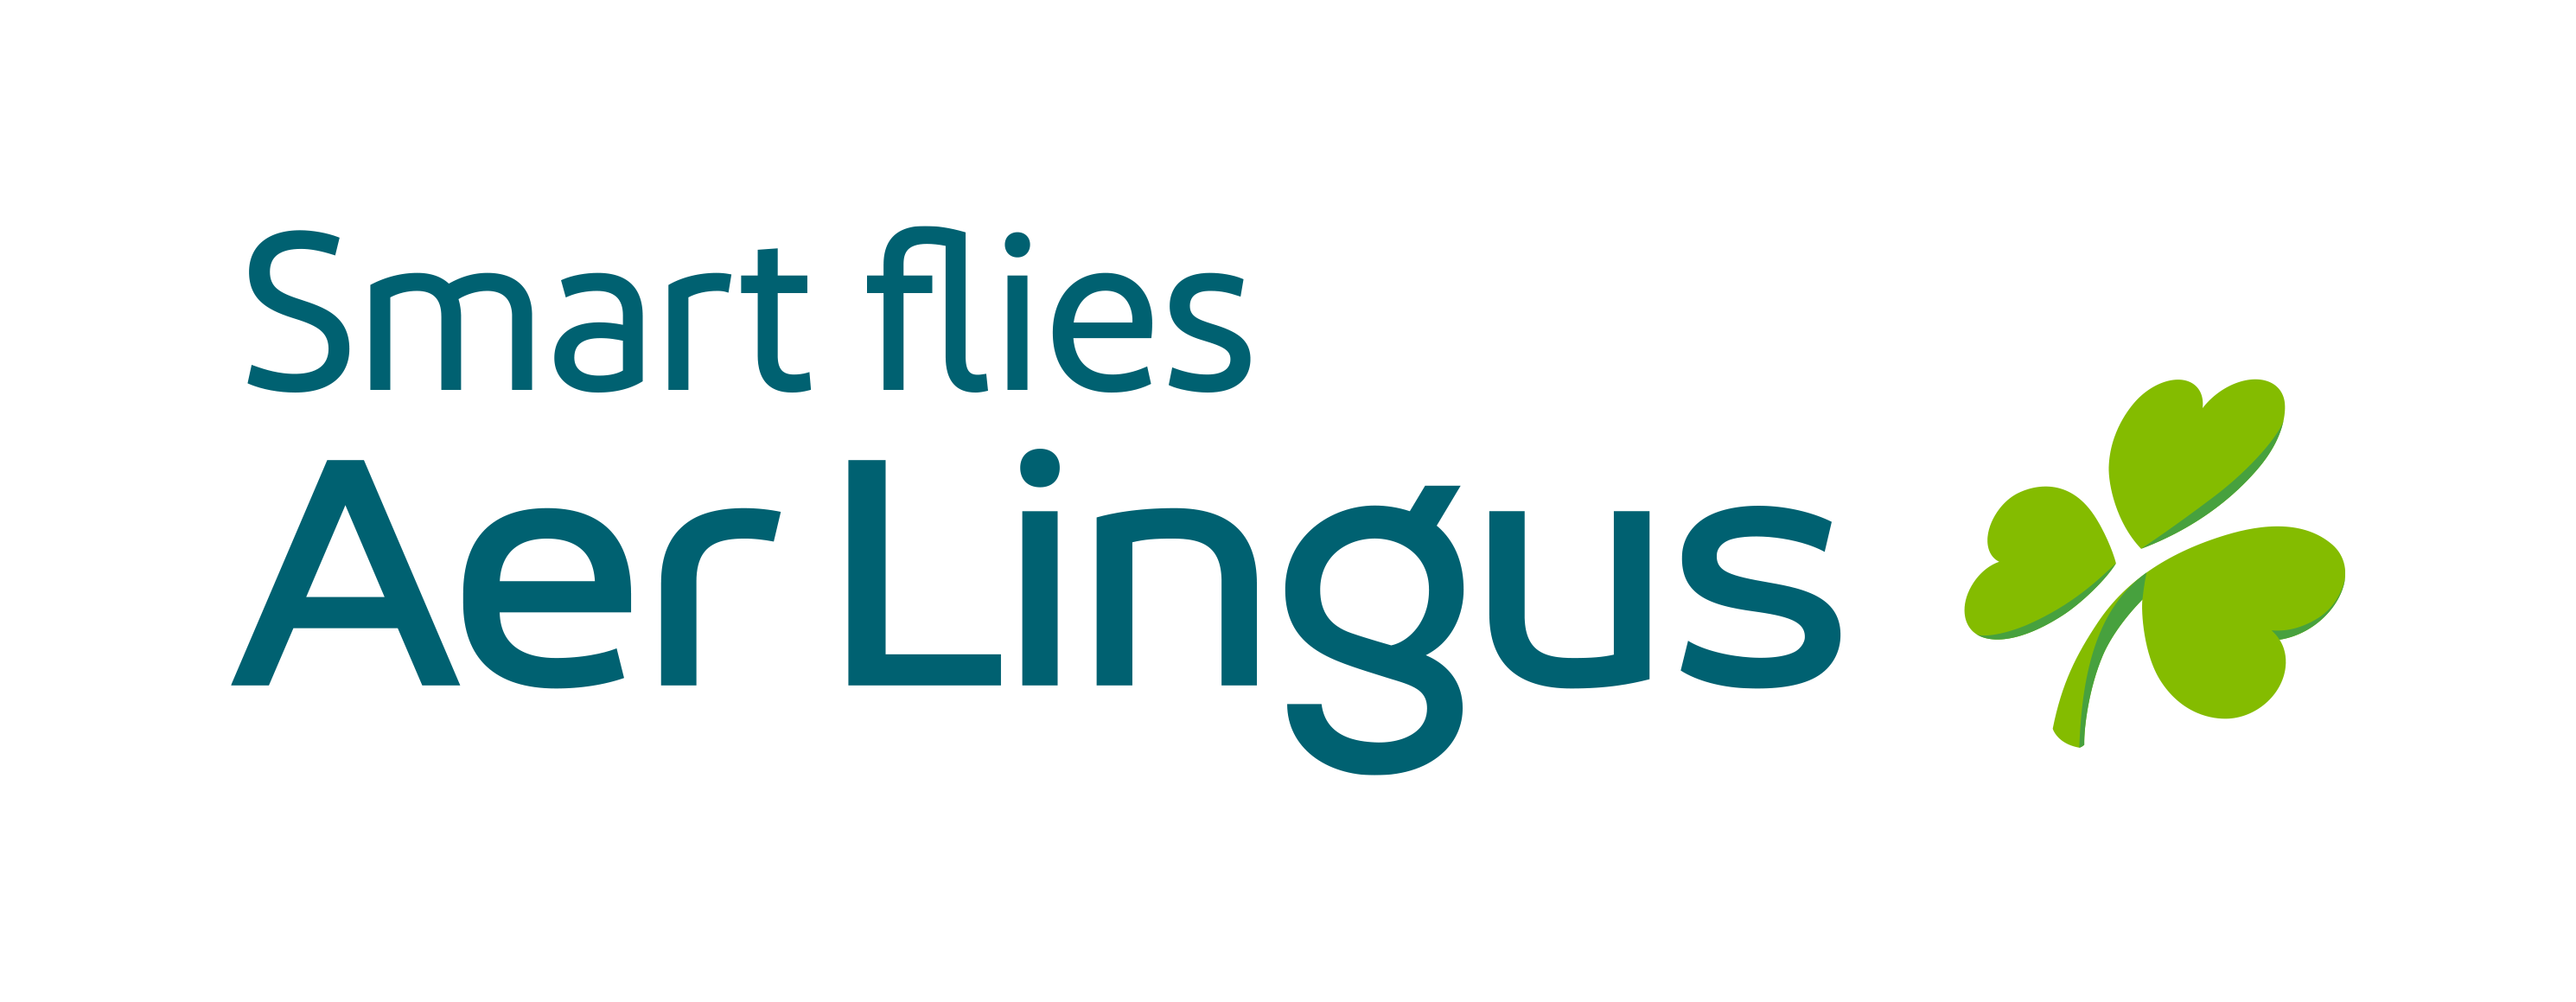 2019Aer_Lingus_smart_flies Logo